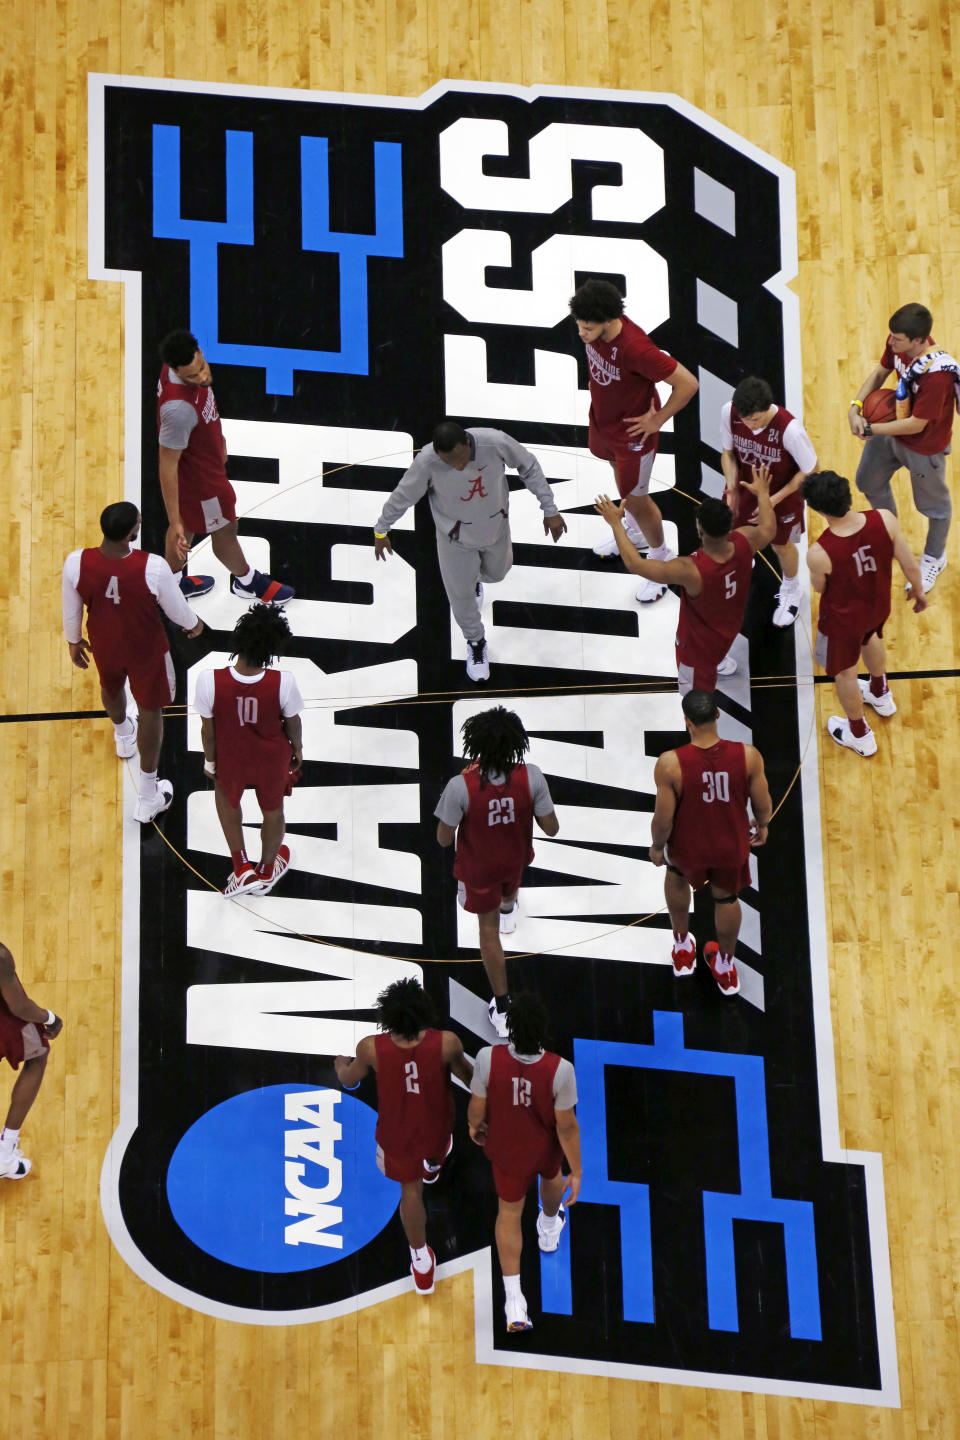 Alabama coach Avery Johnson, center, gathers his team at center court during a practice in preparation for a NCAA men's college basketball tournament first-round game, in Pittsburgh Wednesday, March 14, 2018. Alabama plays Virginia Tech on Thursday. AP Photo/Gene J. Puskar)